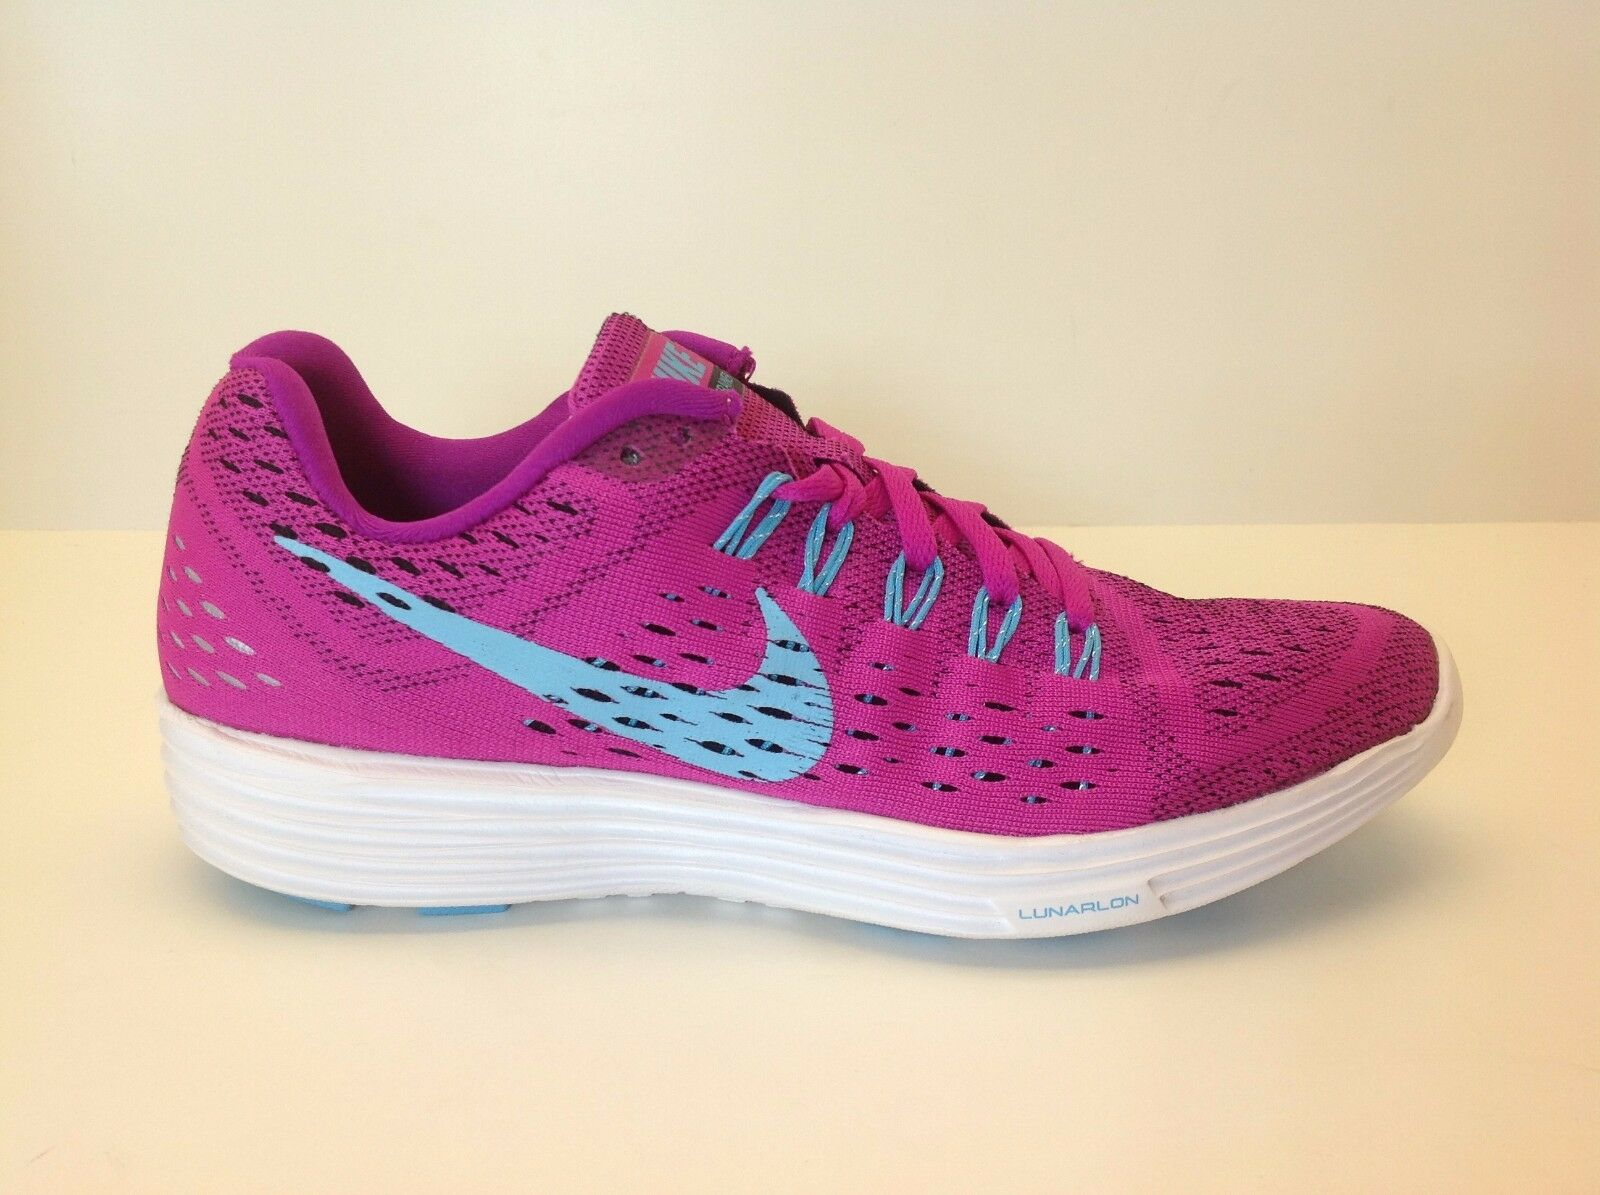 Women's Nike Lunartempo Size 8 New 500 in Box Fuchsia/White 705462 500 New 5570e5